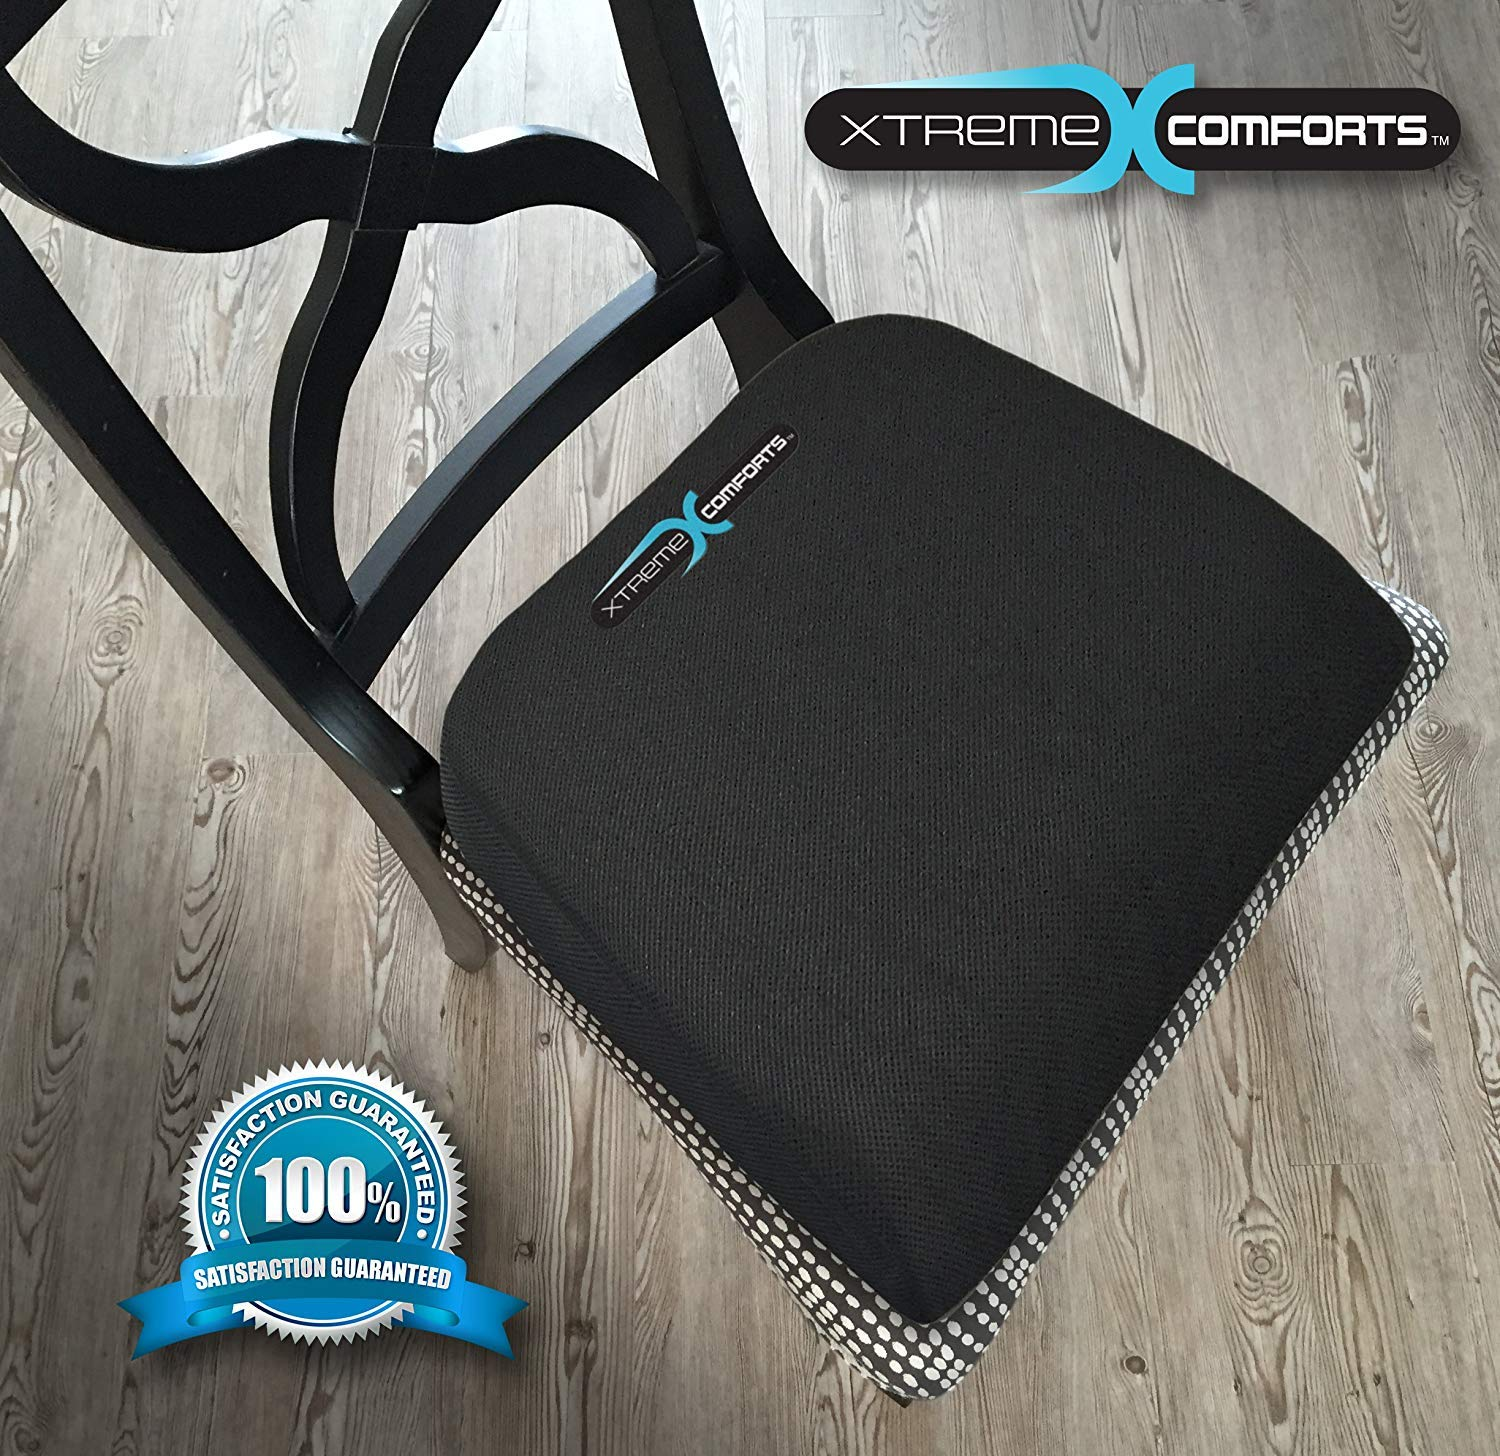 Xtreme Comforts Large Seat Cushion with Carry Handle and Anti Slip Bottom Gives Relief from Back Pain (2 Pack) by Xtreme Comforts (Image #7)